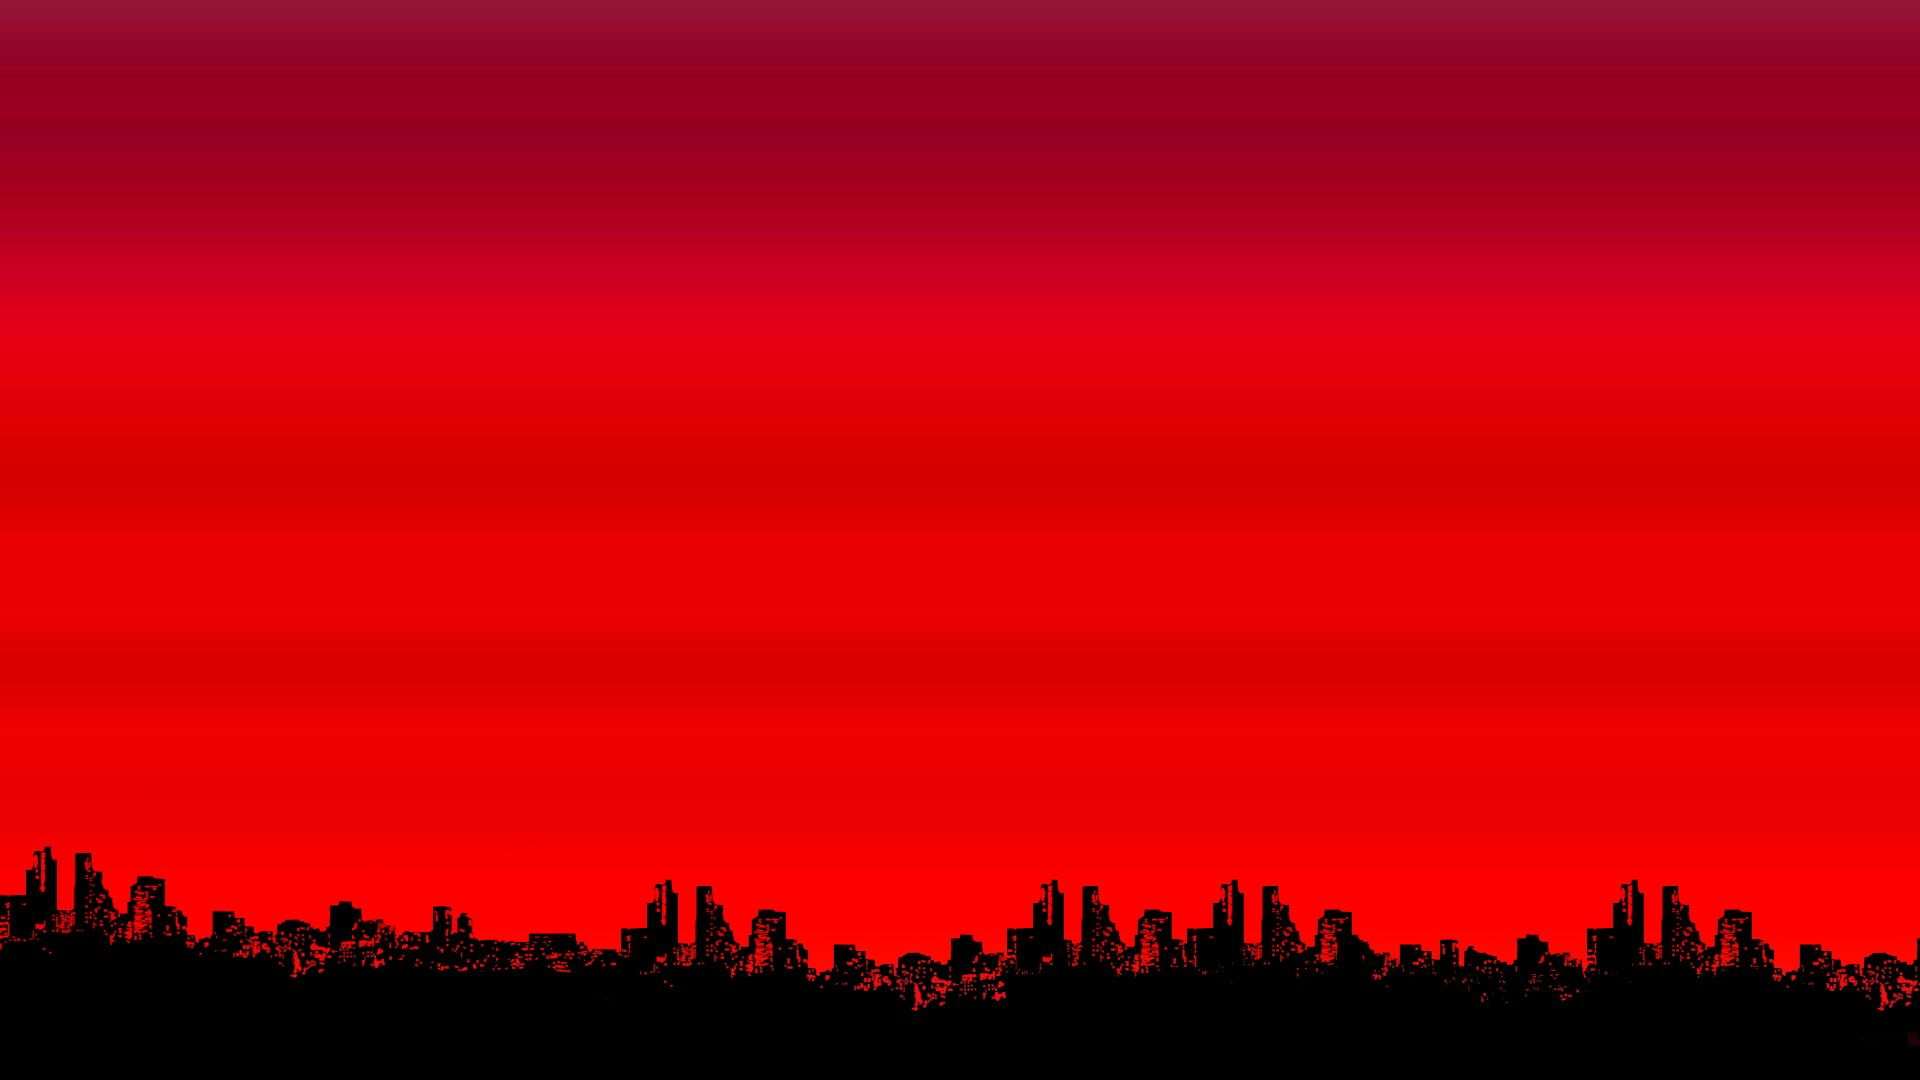 Red Color Simple Background Minimalism Buildings Black Art Red Color Simple Background Minimalism Buildi Red Wallpaper Dark Red Wallpaper Red Background